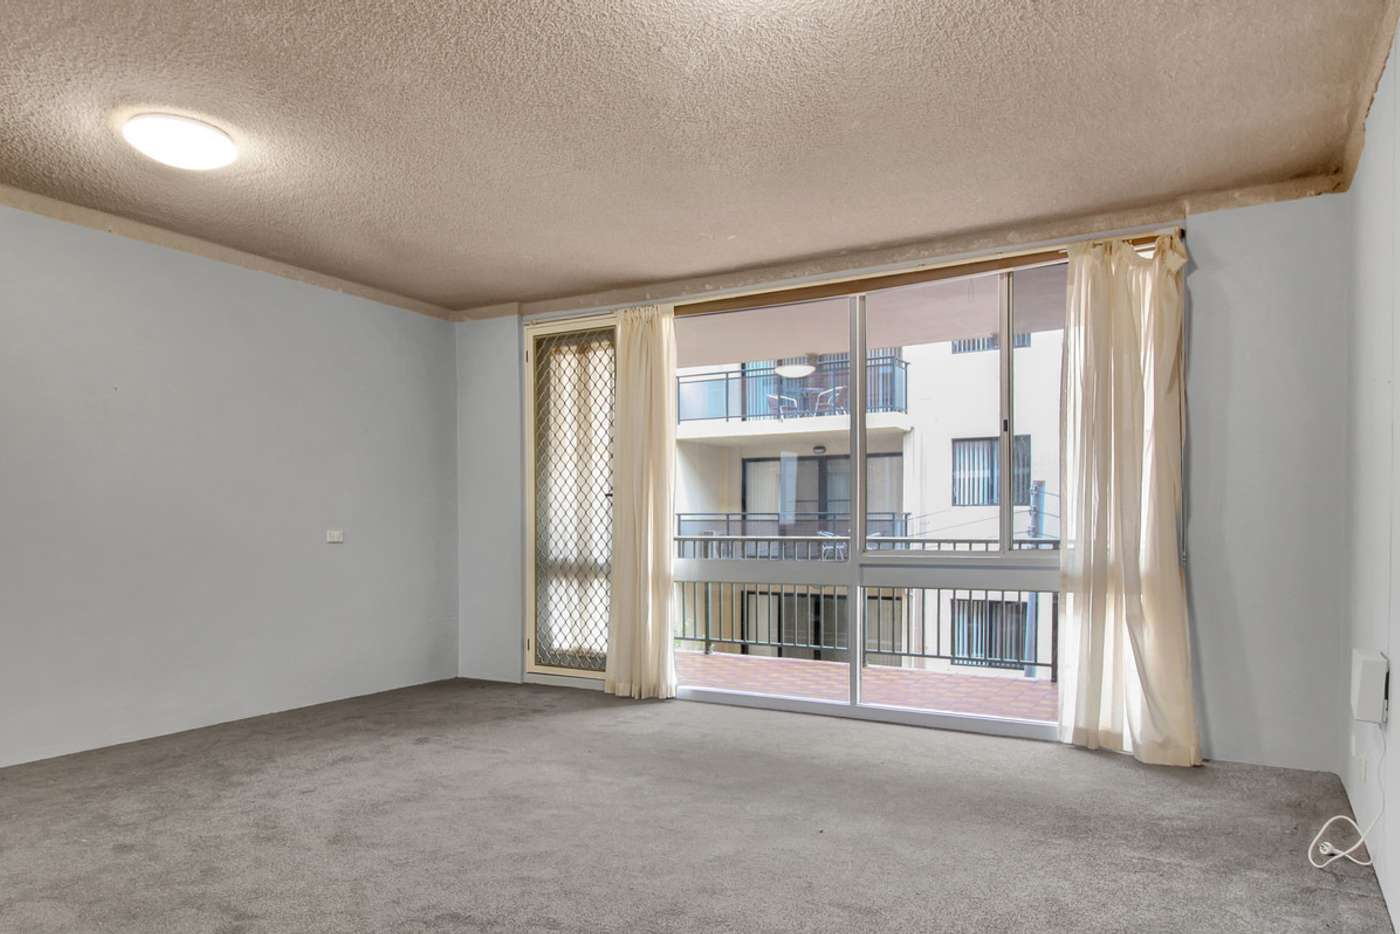 Main view of Homely unit listing, 3/56 Kembla Street, Wollongong NSW 2500